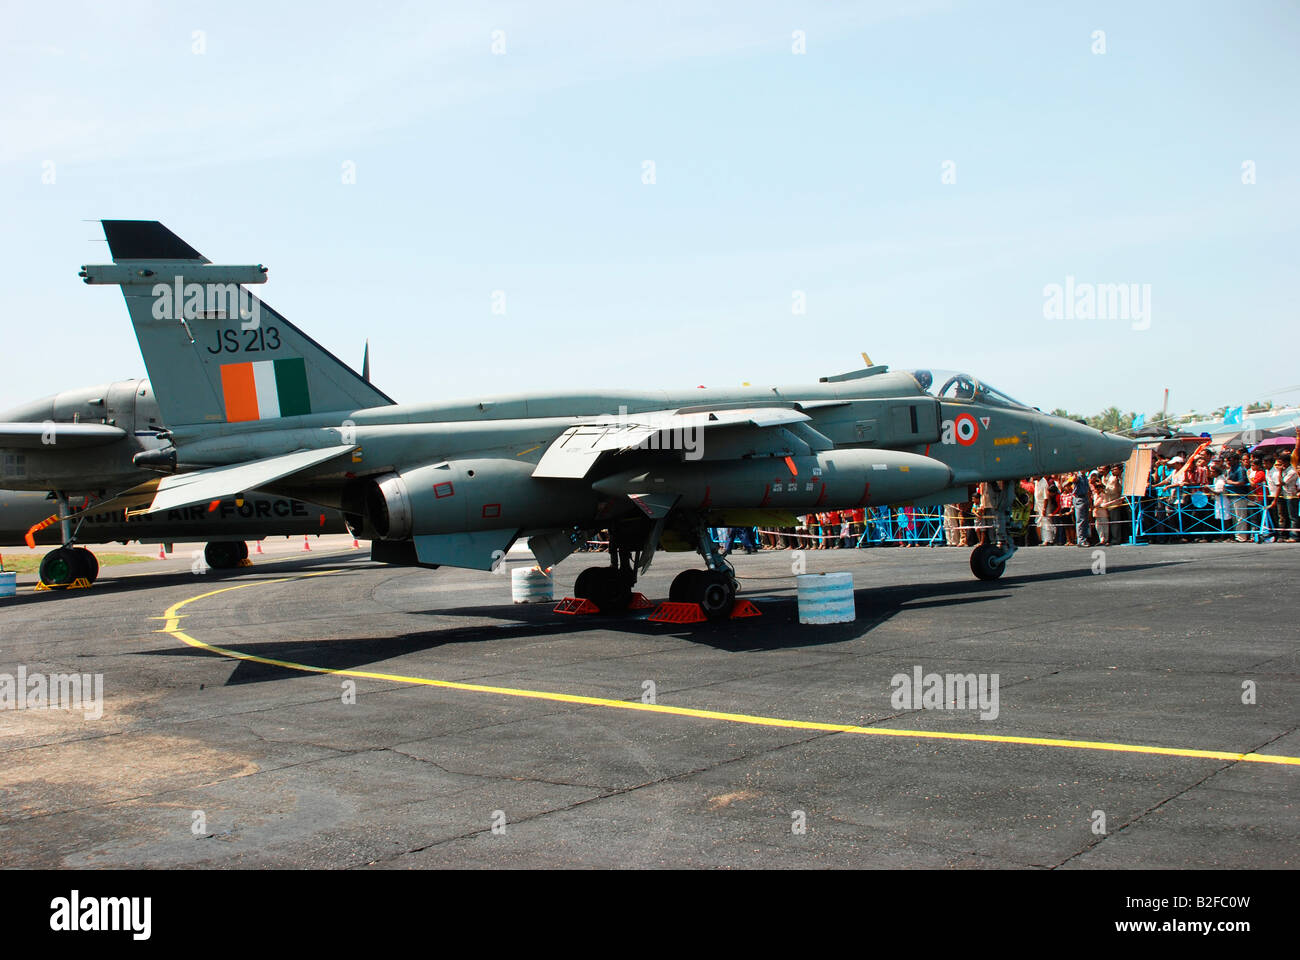 An indian airforce aircraft parked in the tarmach - Stock Image